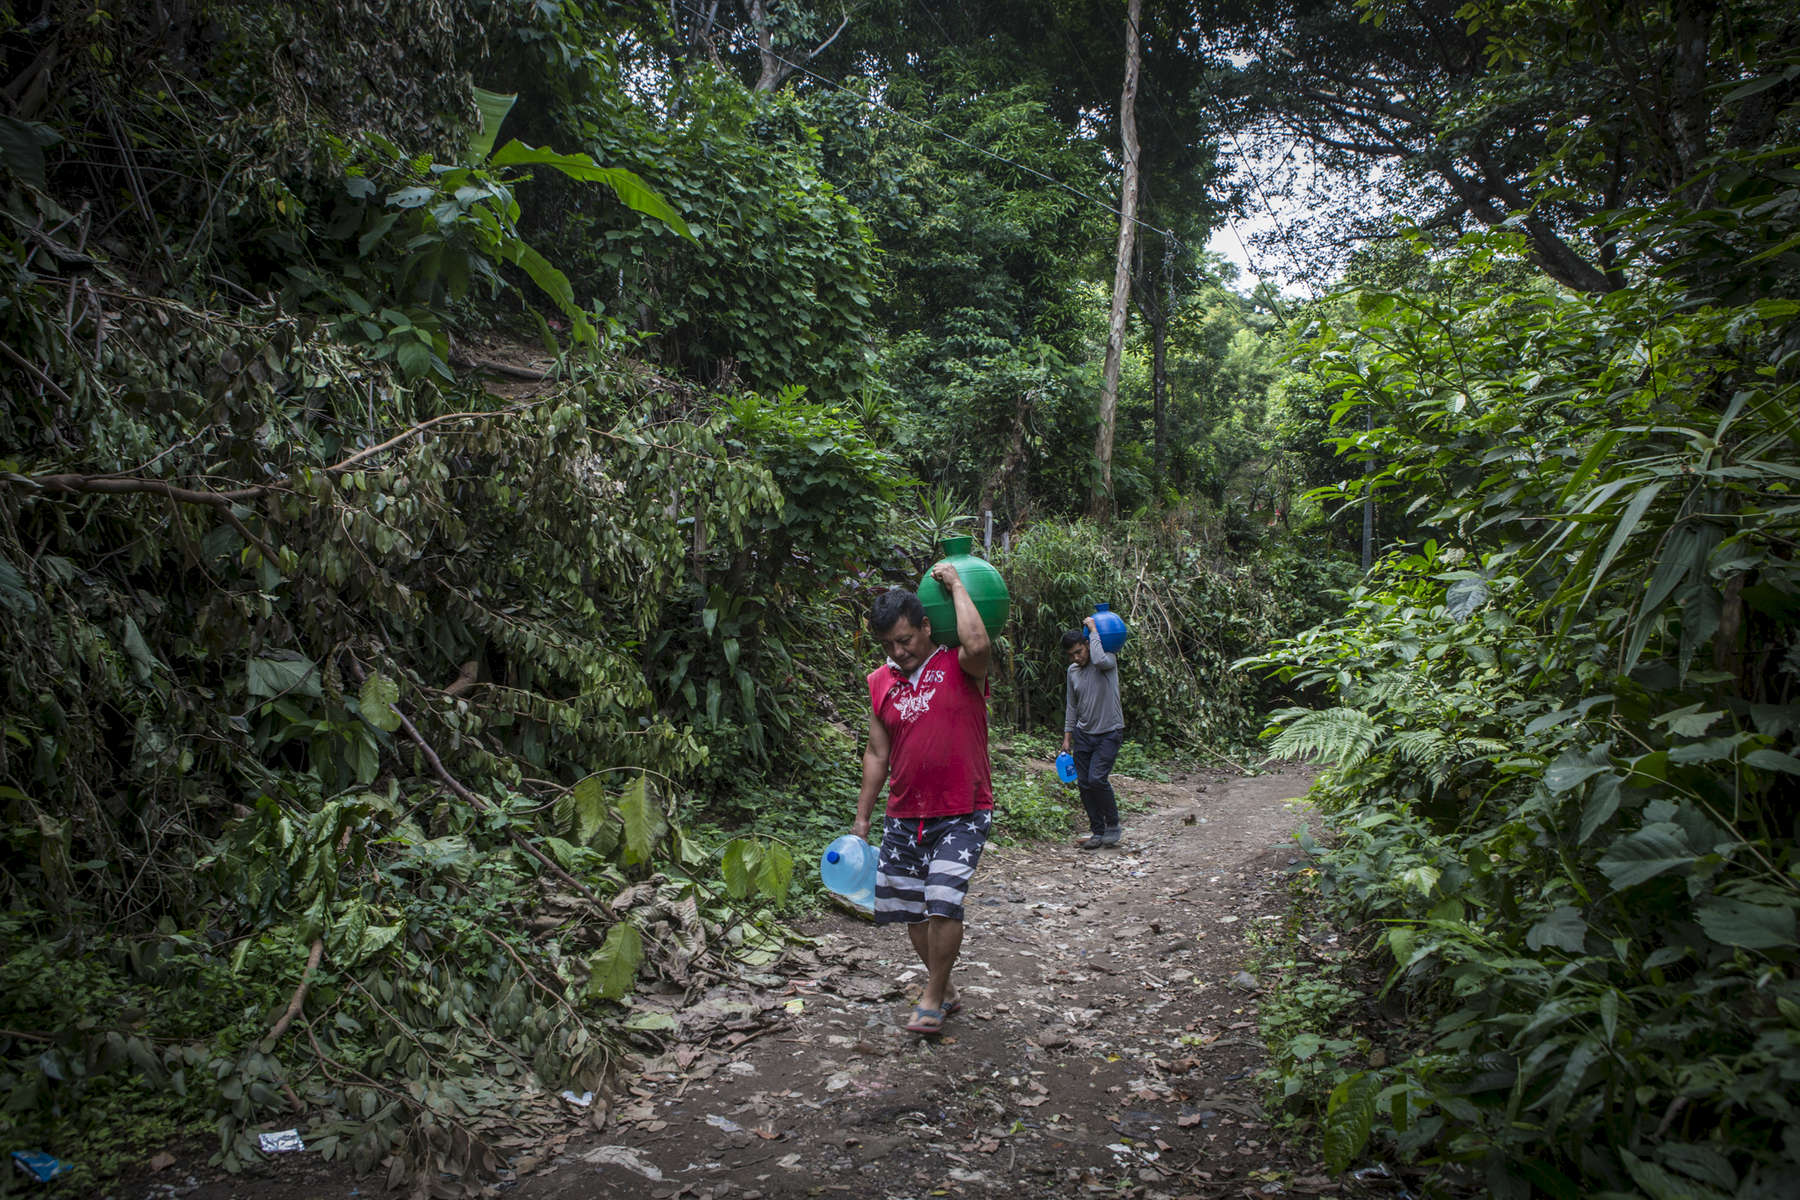 San Salvador, El Salvador- Carlos Melara, 45, carries jugs of water to his home in the San Antonio neighborhood where 28 houses (70 people) live without water,of San Salvador, El Salvador June 2018. During the dry season, Melara makes 12 trips to the communal water tap and four in the rainy season when they collect rain water to use for cleaning and bathing. (Jane Hahn)